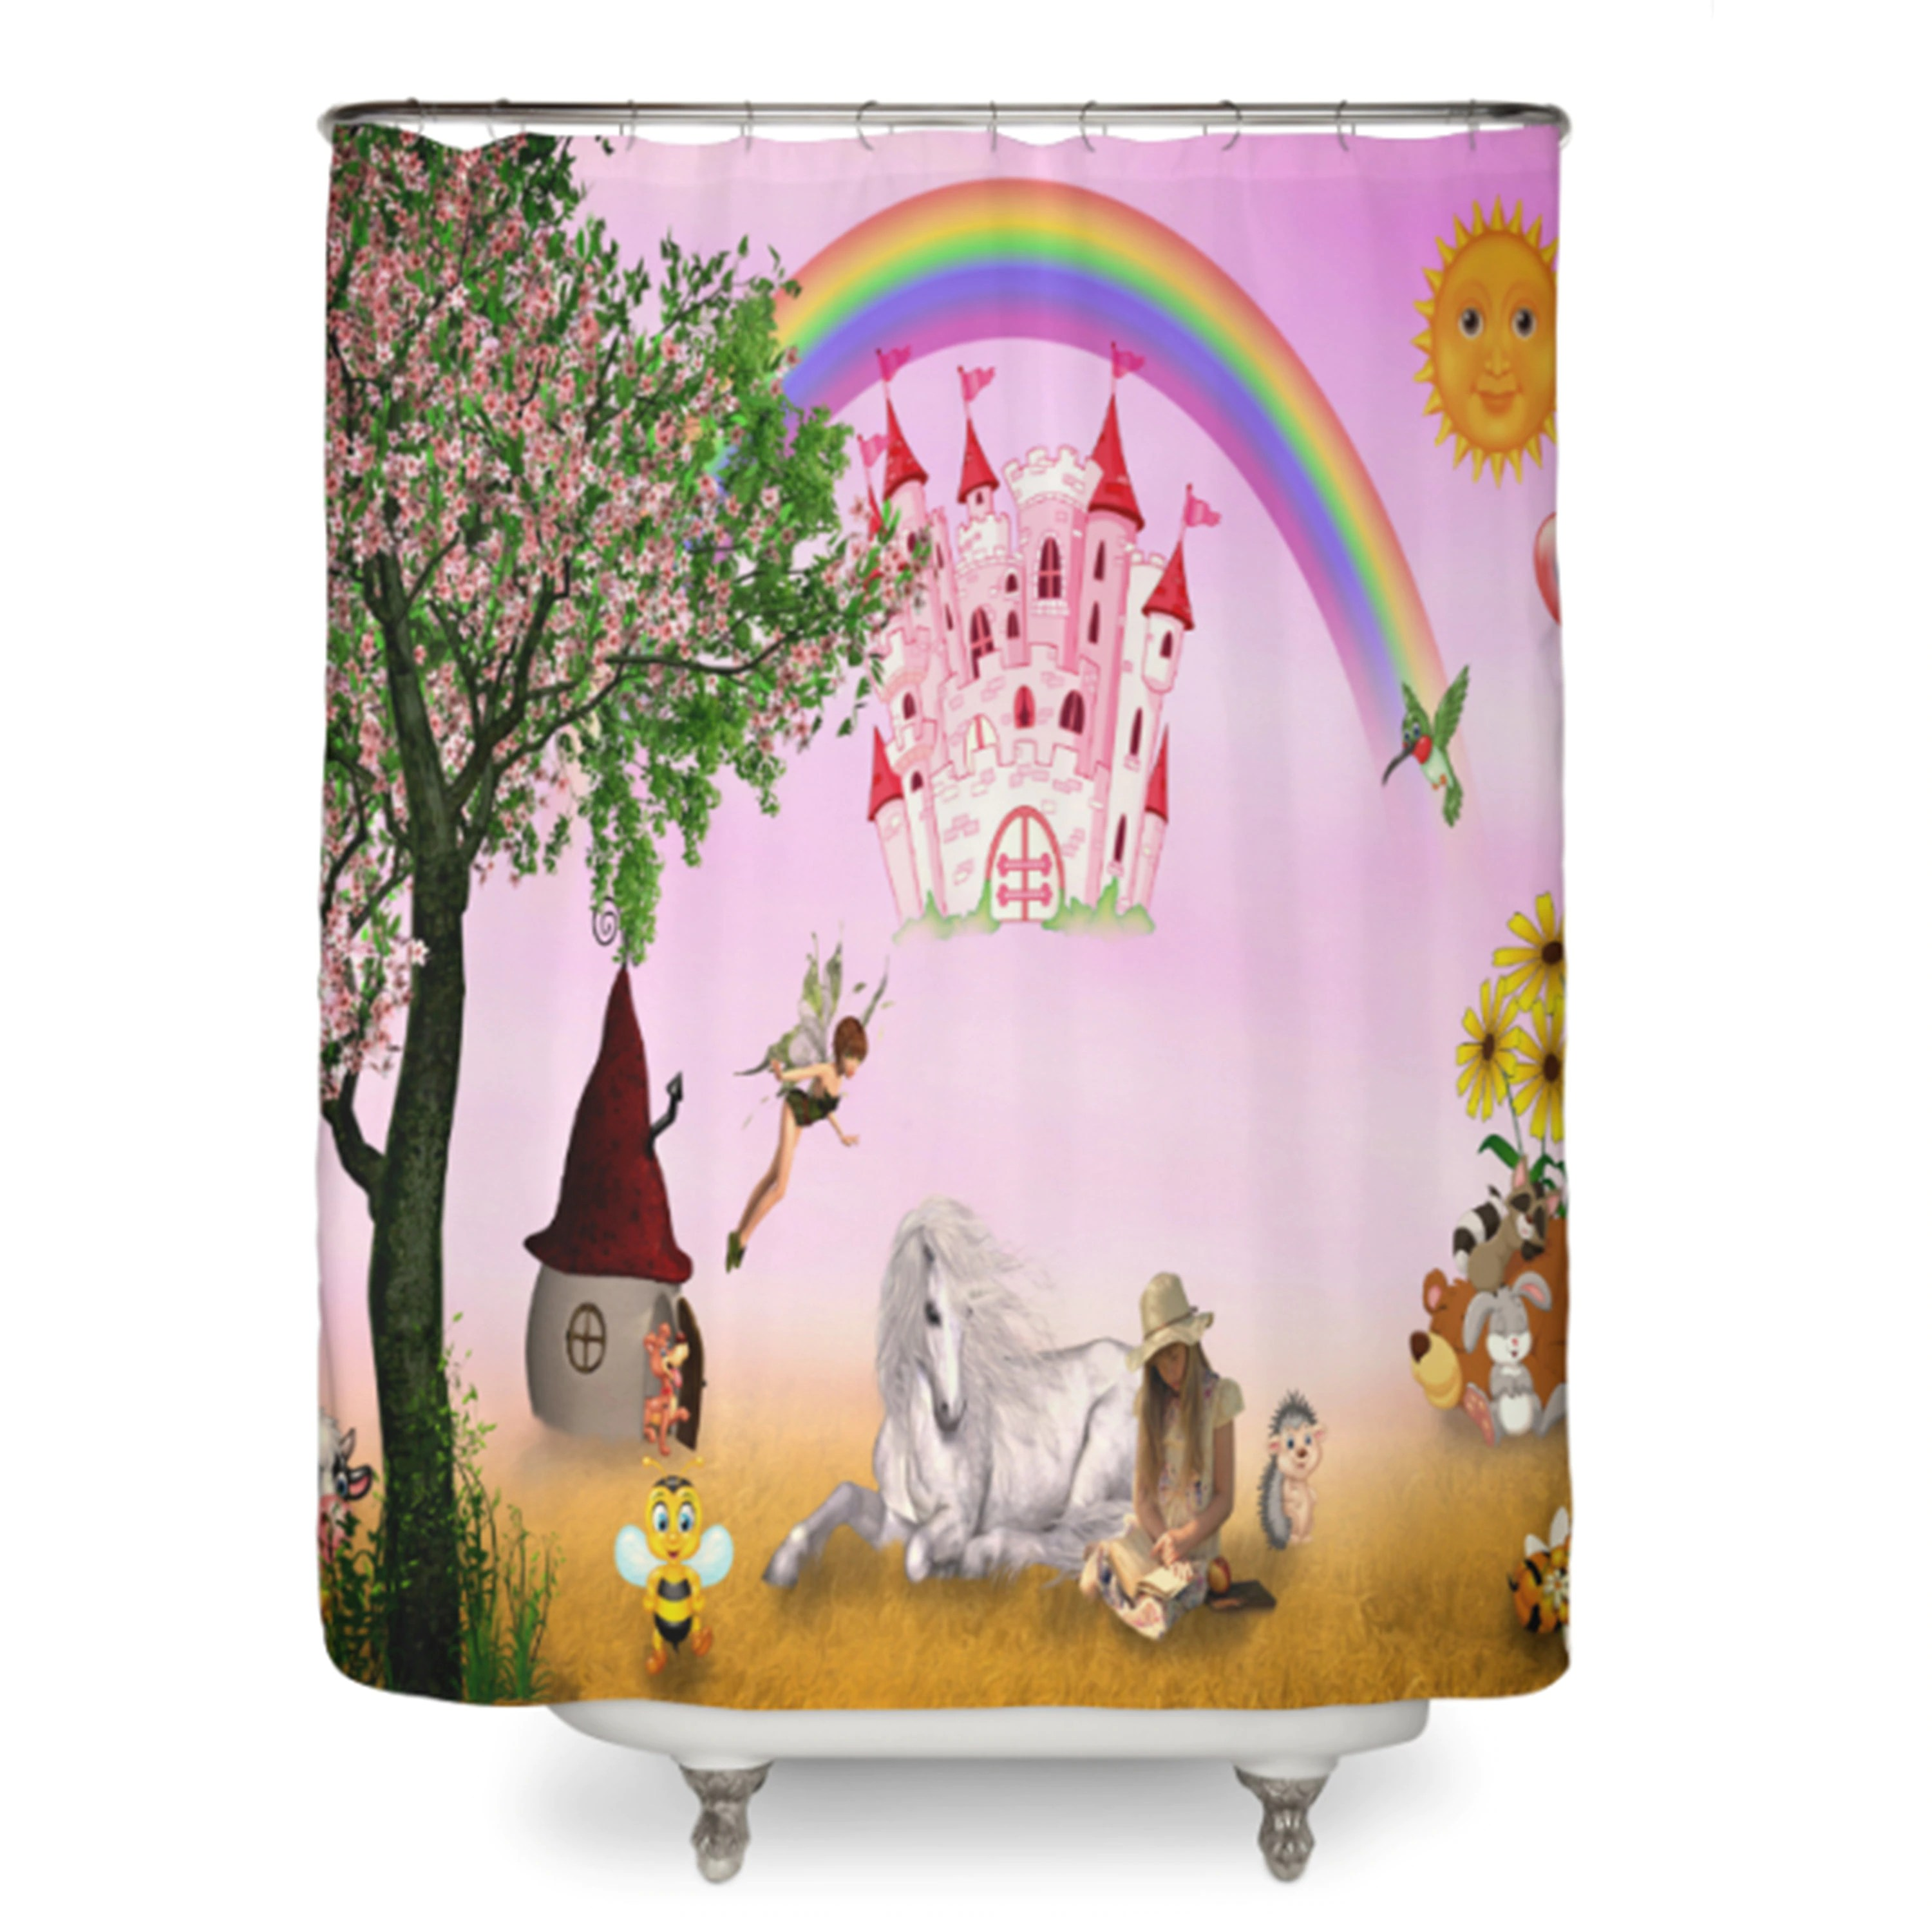 Cute Girly Shower Curtains Fairy Tale Shower Curtain Girly Bathroom Decor Girls Shower Curtain Pink Fairies Fairytale Shower Curtain Rainbow Kids Shower Curtains